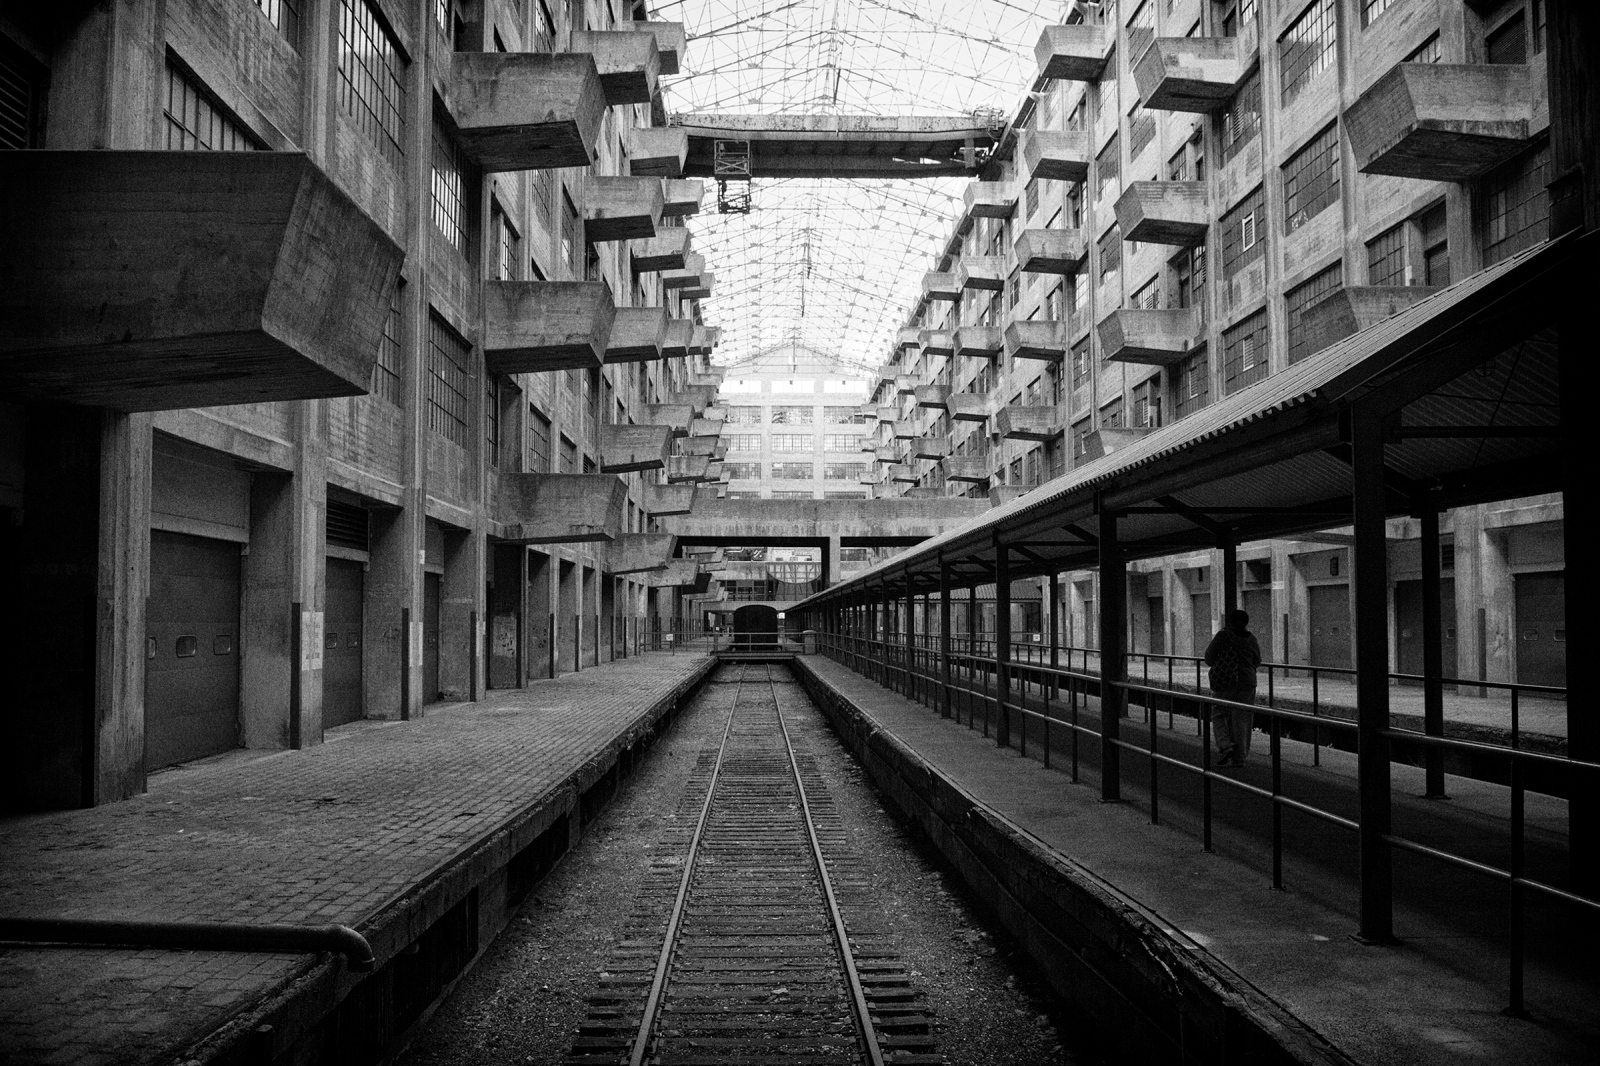 Brooklyn Army Terminal, Brooklyn, New York. Nov. 5, 2011